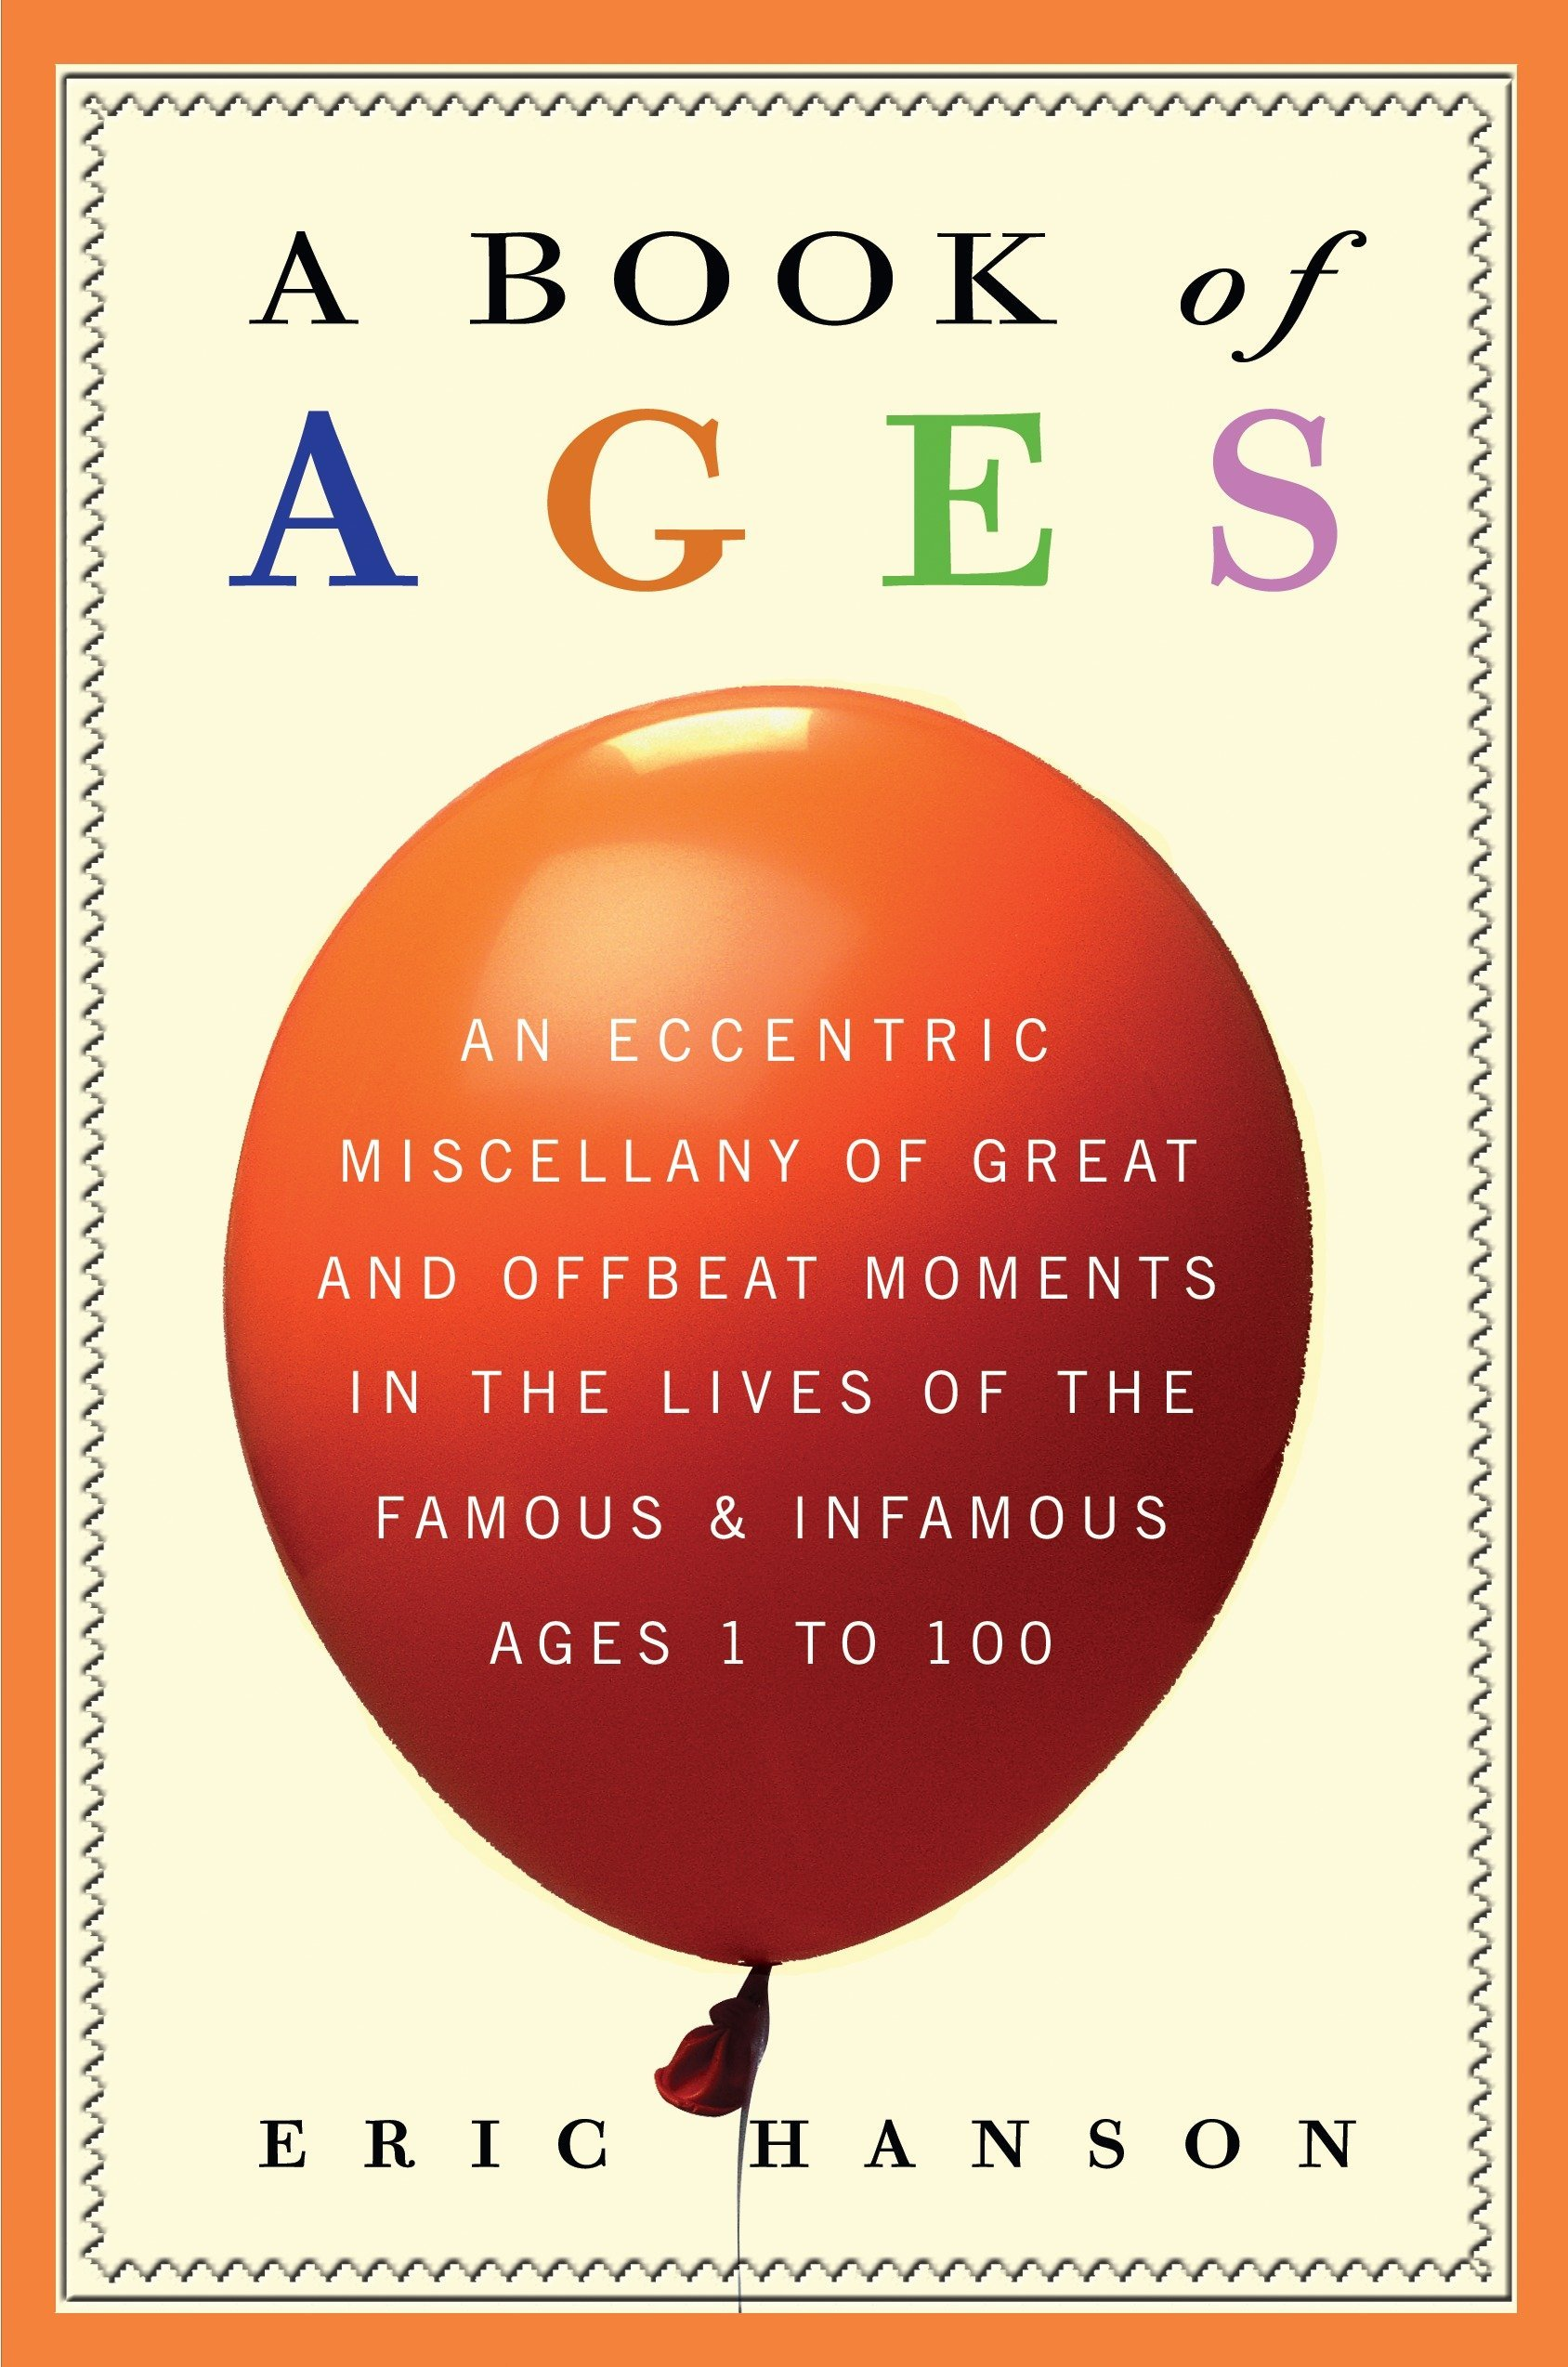 A Book of Ages: An Eccentric Miscellany of Great and Offbeat Moments in the Lives of the Famous and Infamous, Ages 1 to 100